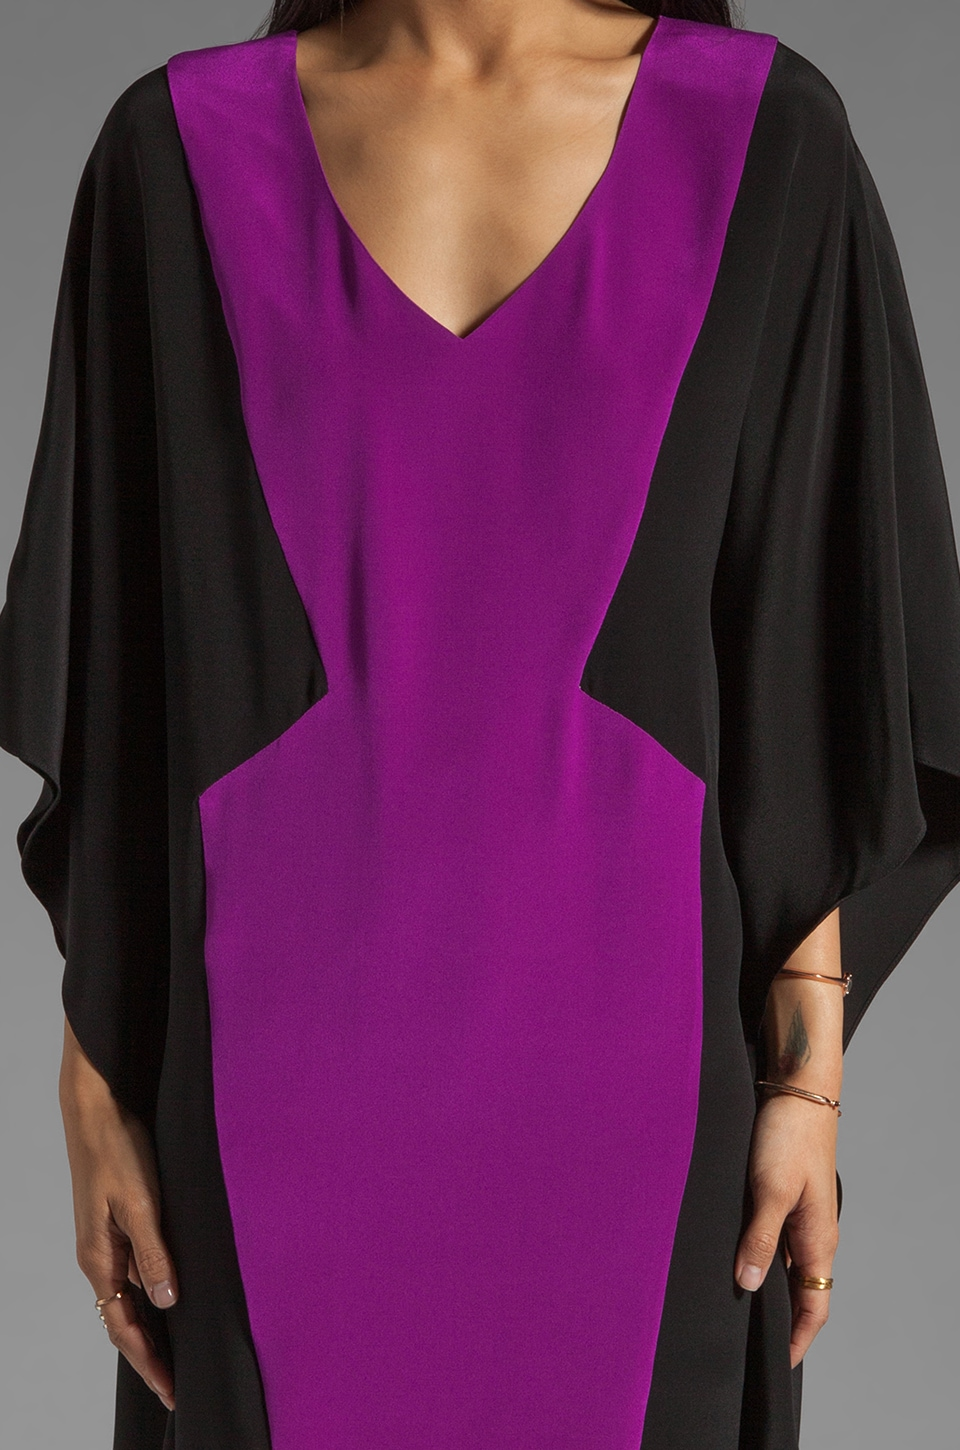 Jay Godfrey Hardee Kimono Dress in Black/Dahlia